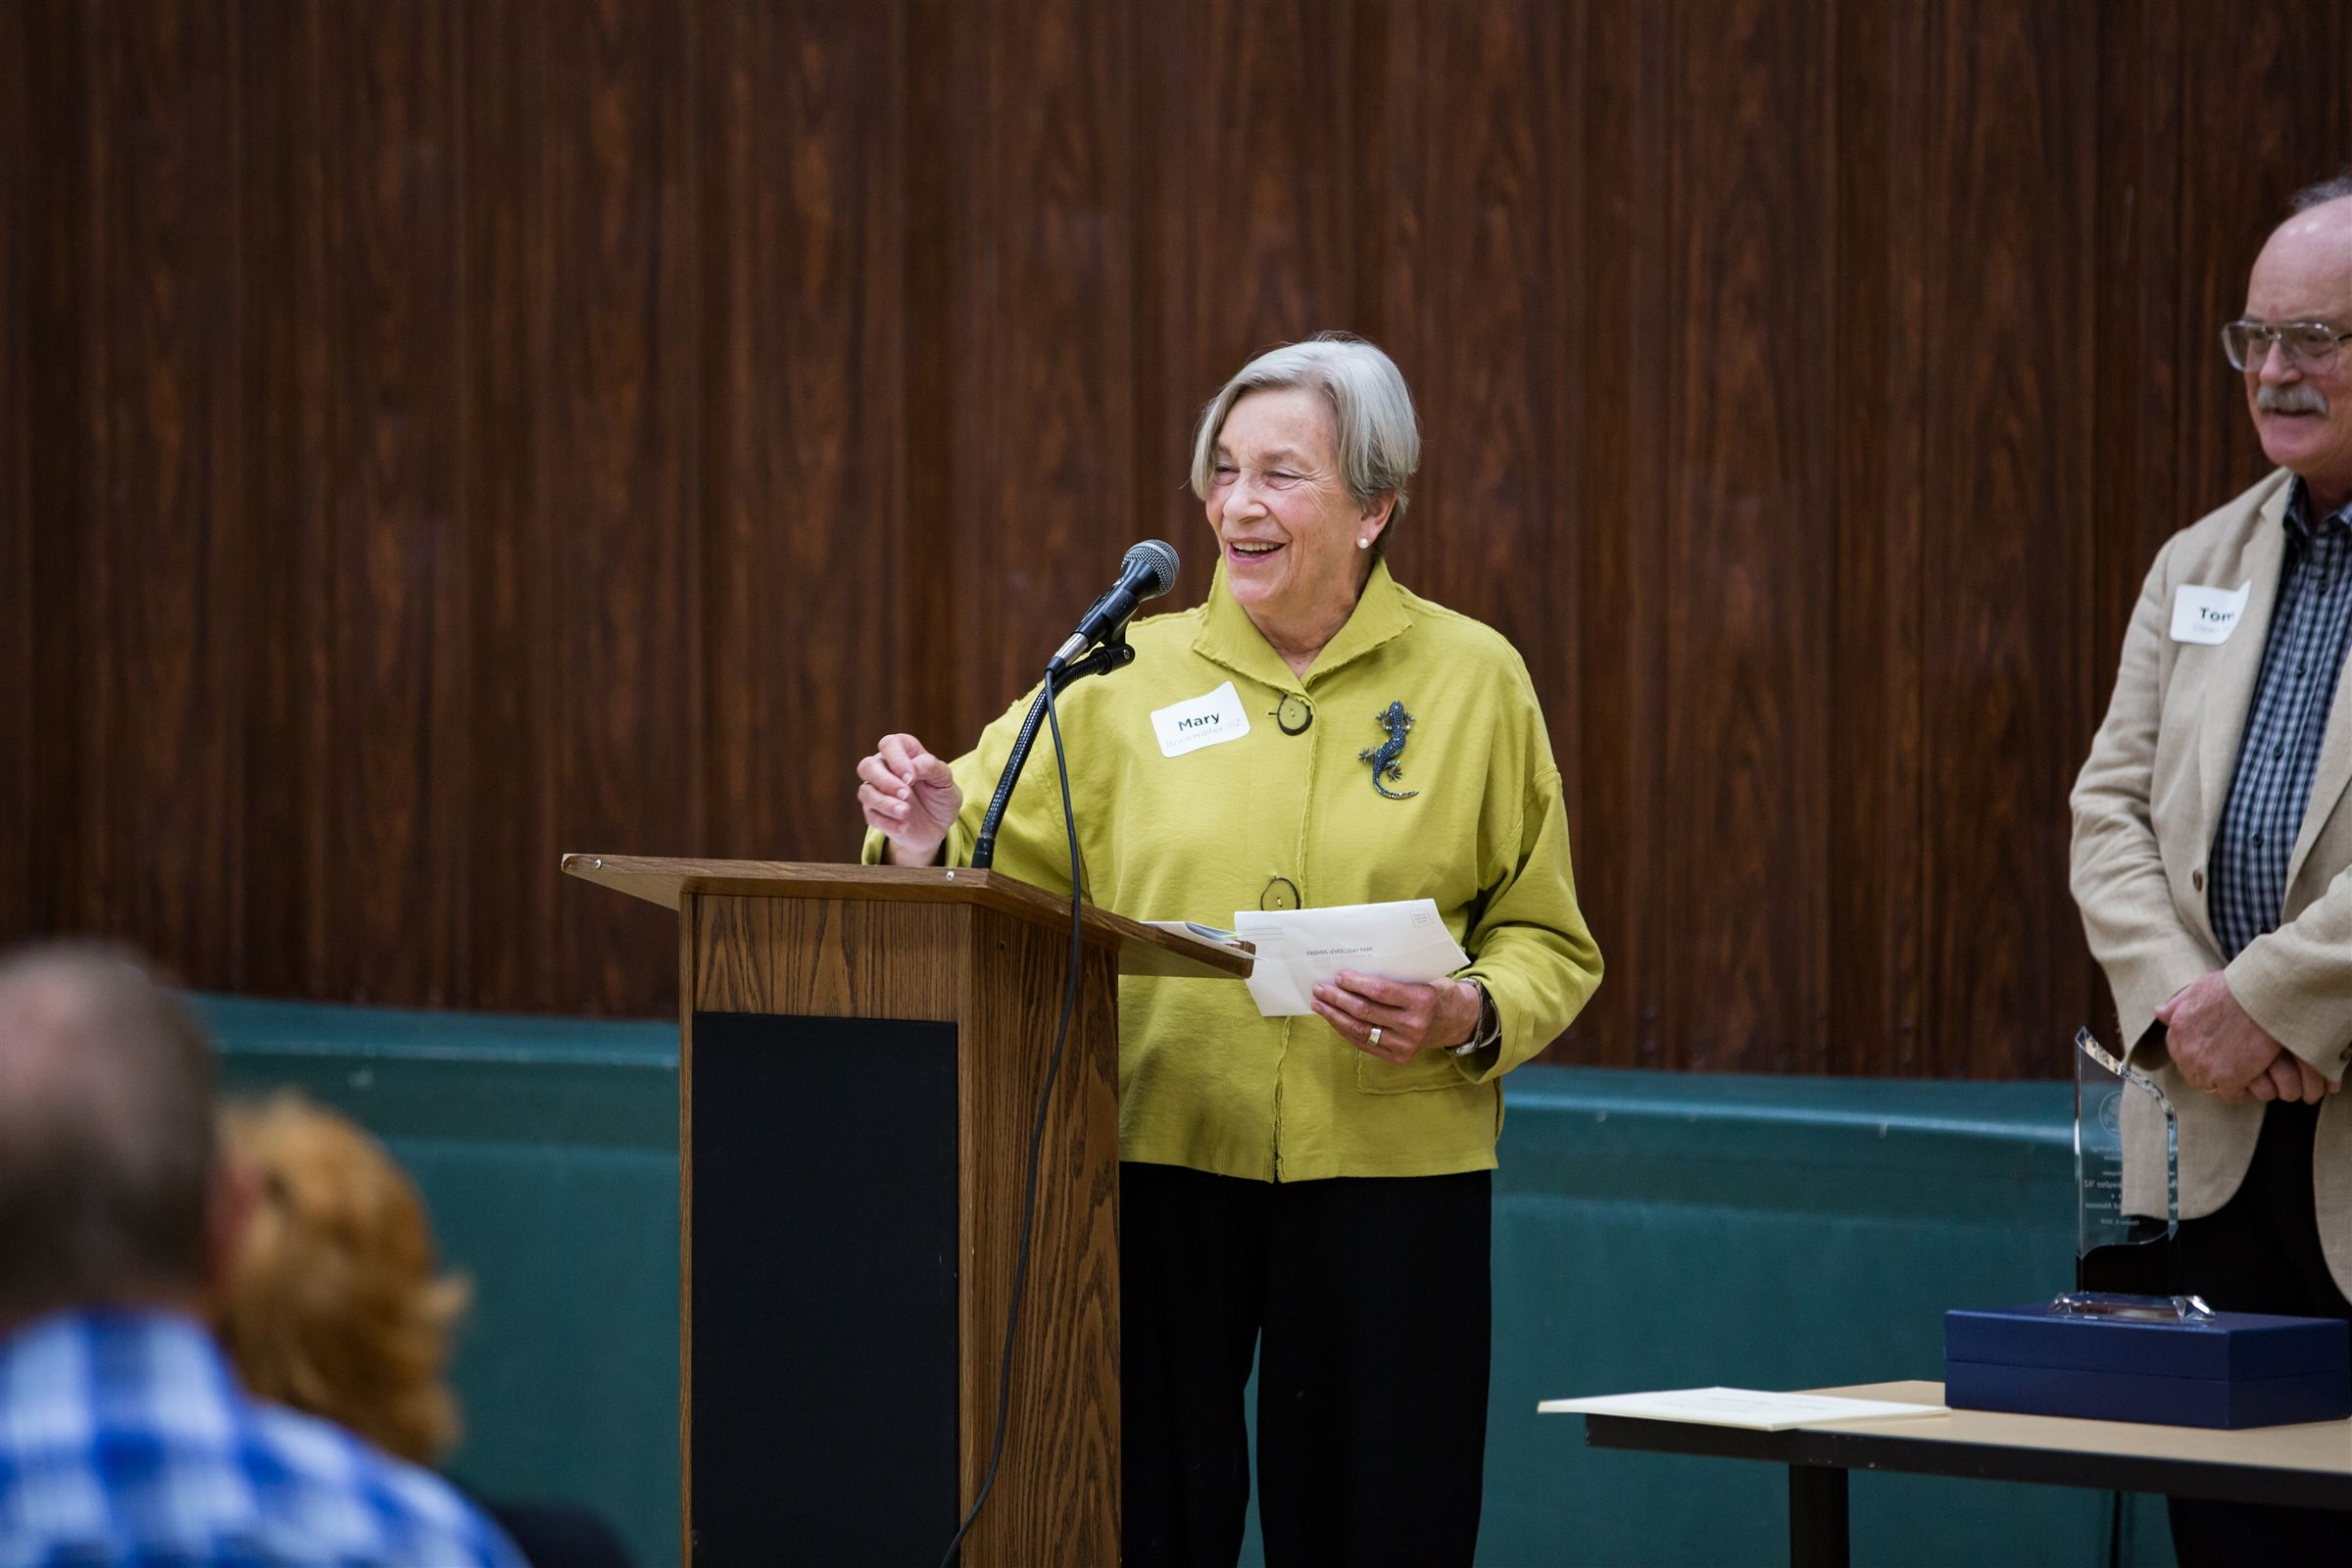 Mary Bookwalter '62 received the Distinguished Alumuns/Alumna Award, which is given to an alumnus/a who personifies the mission of The Orchard School by developing knowledge, confidence, and character essential for a life of learning, leadership and positive contribution to society.